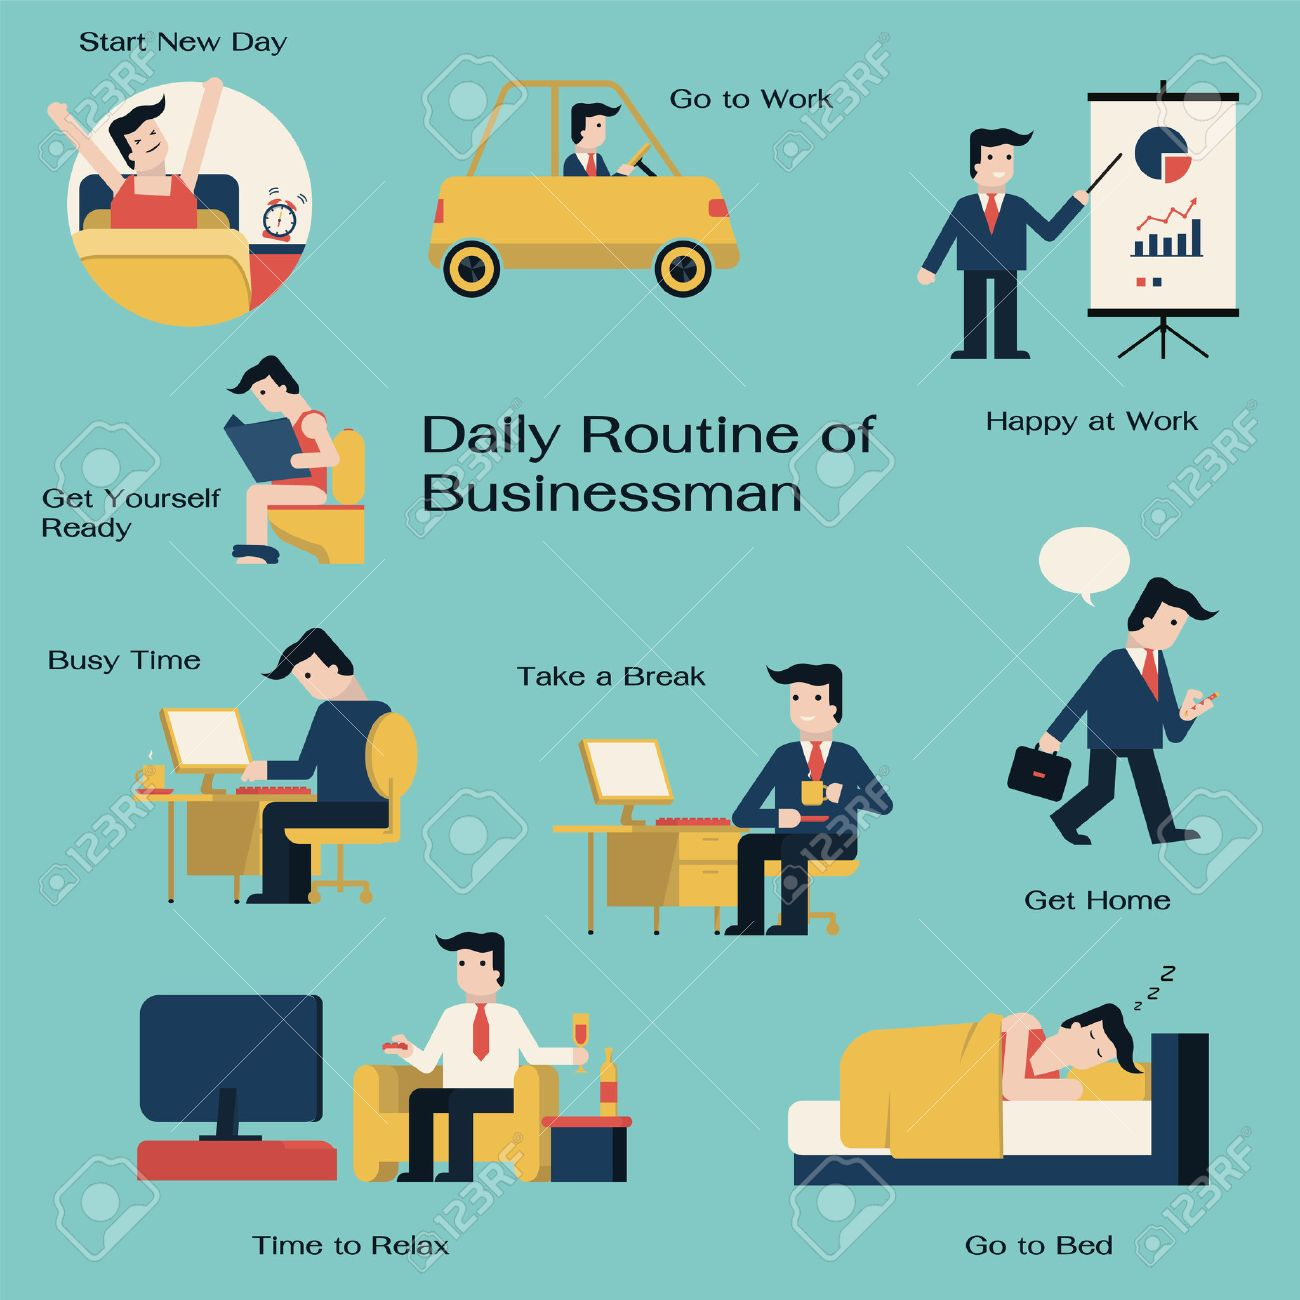 Drive Work Businessman In Daily Routine Get Up Drive To Work Working